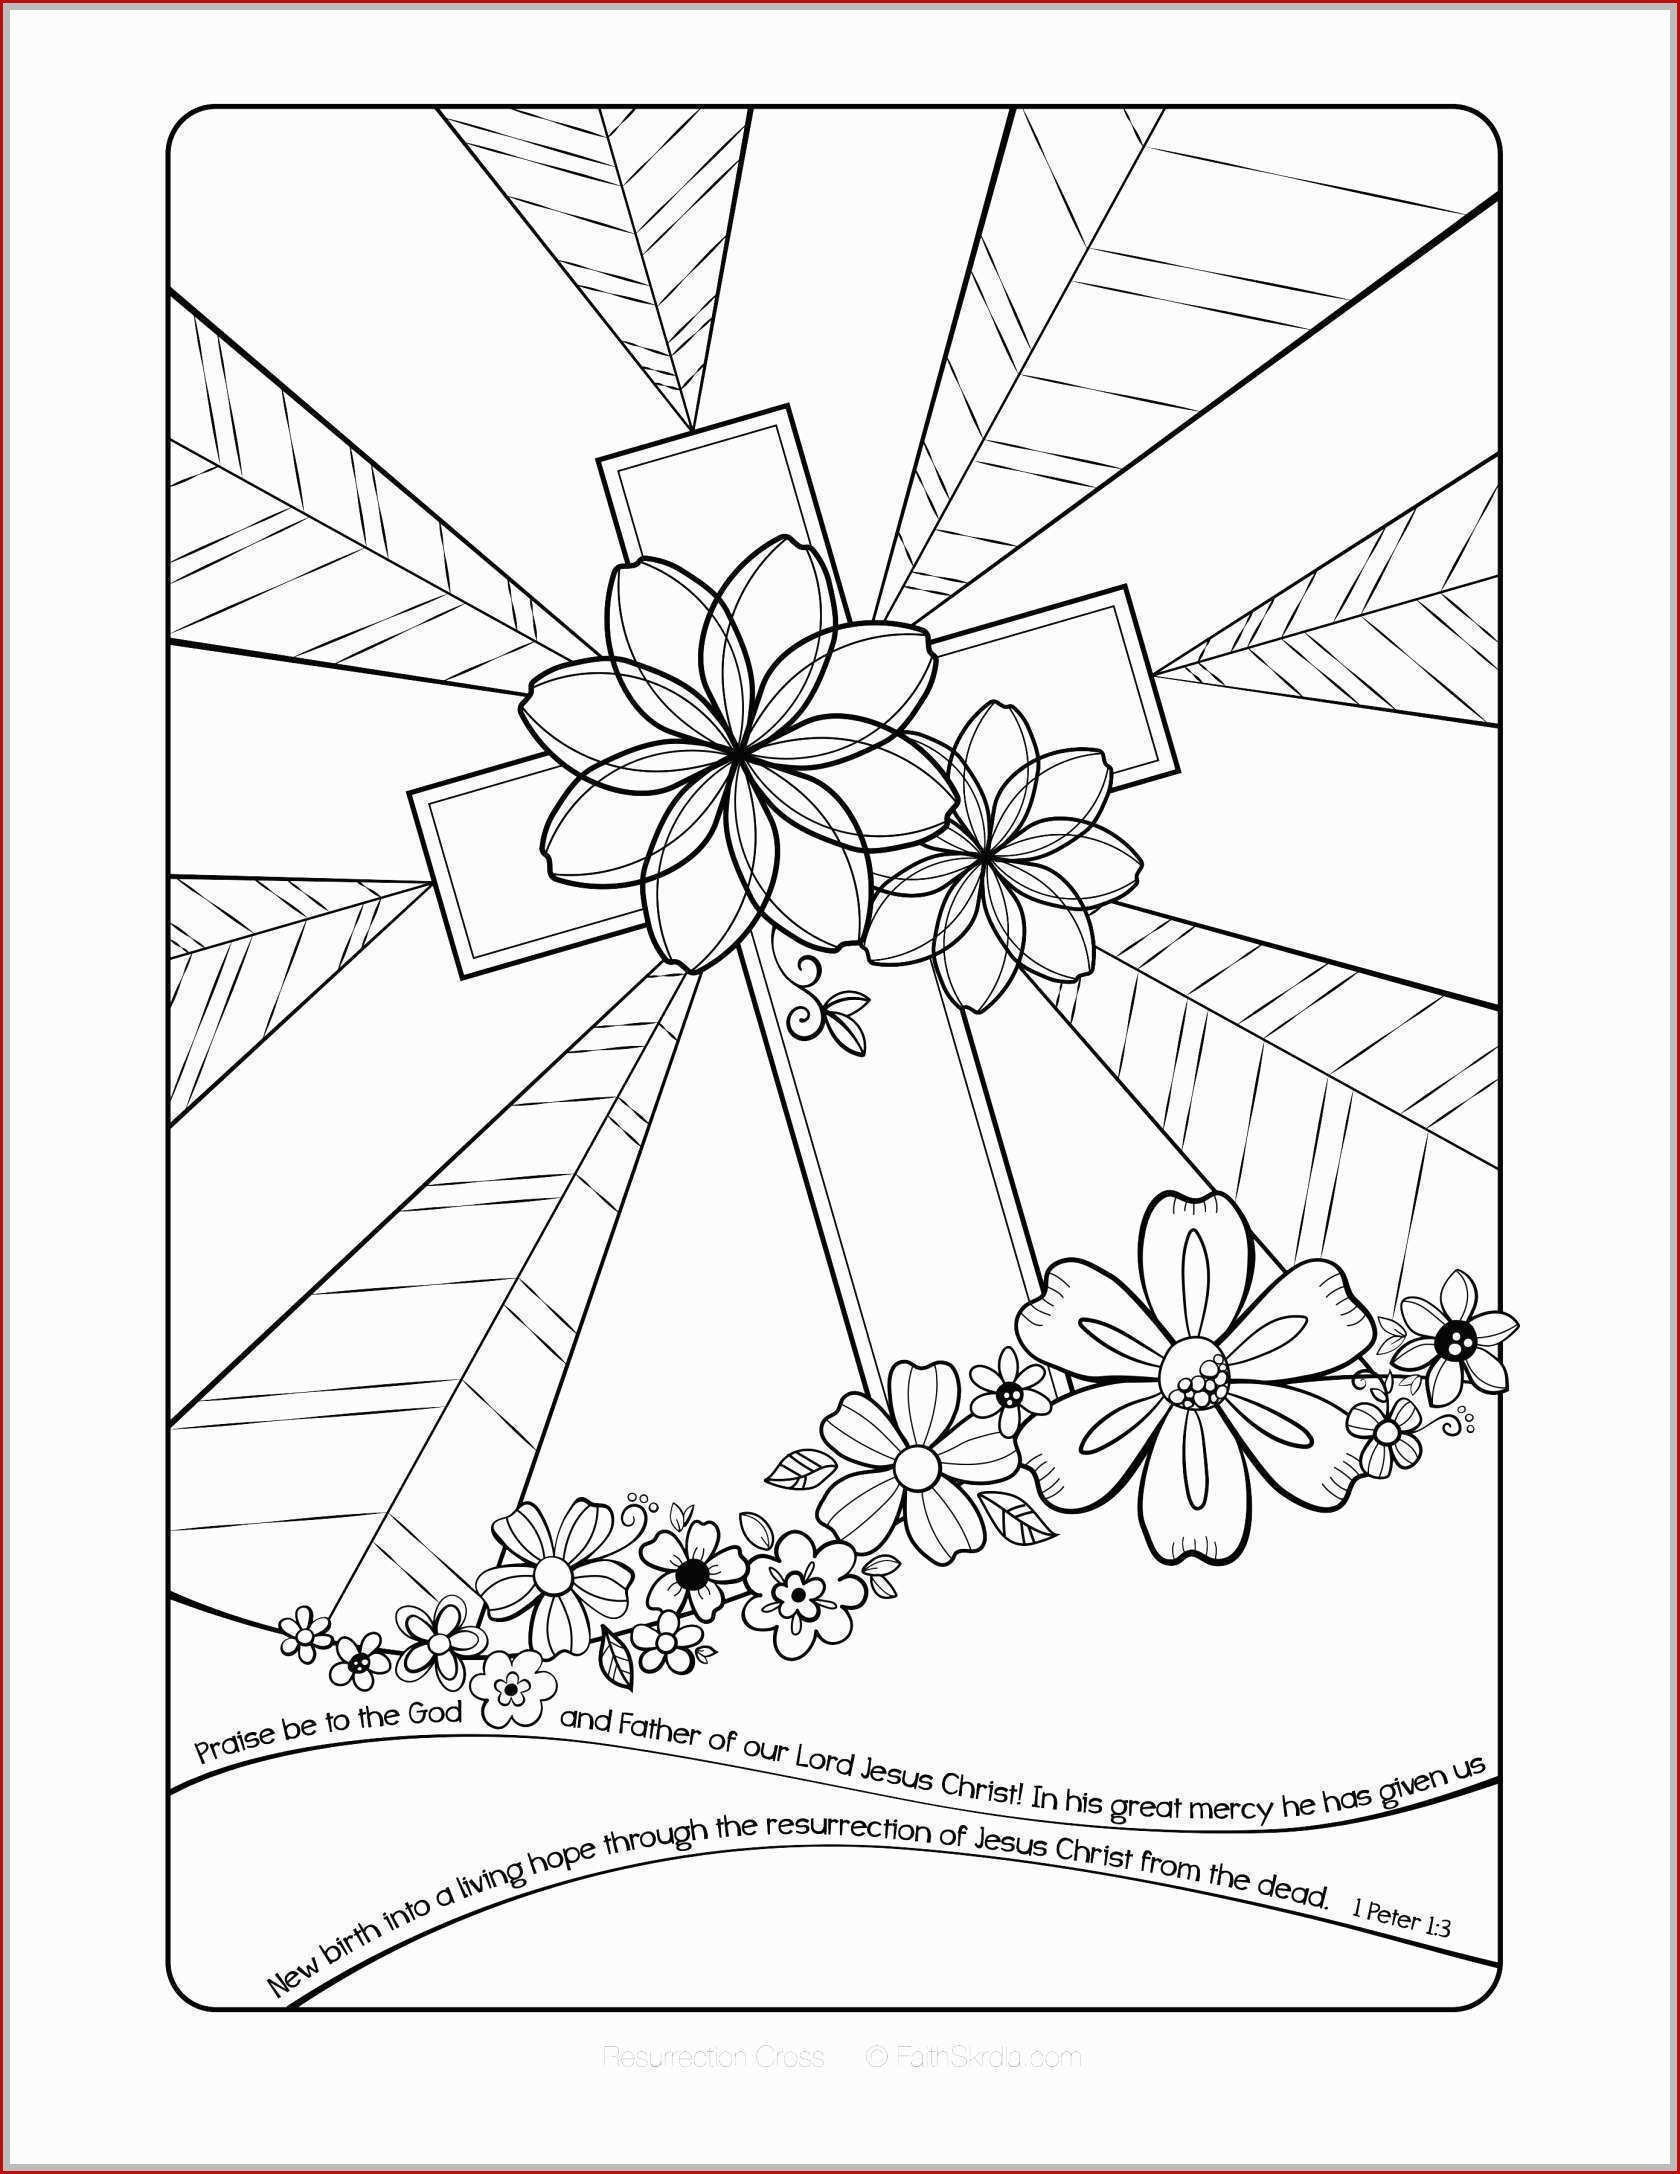 Polygon Worksheets 5th Grade Printable Worksheets for Elementary Students Numbers to Free